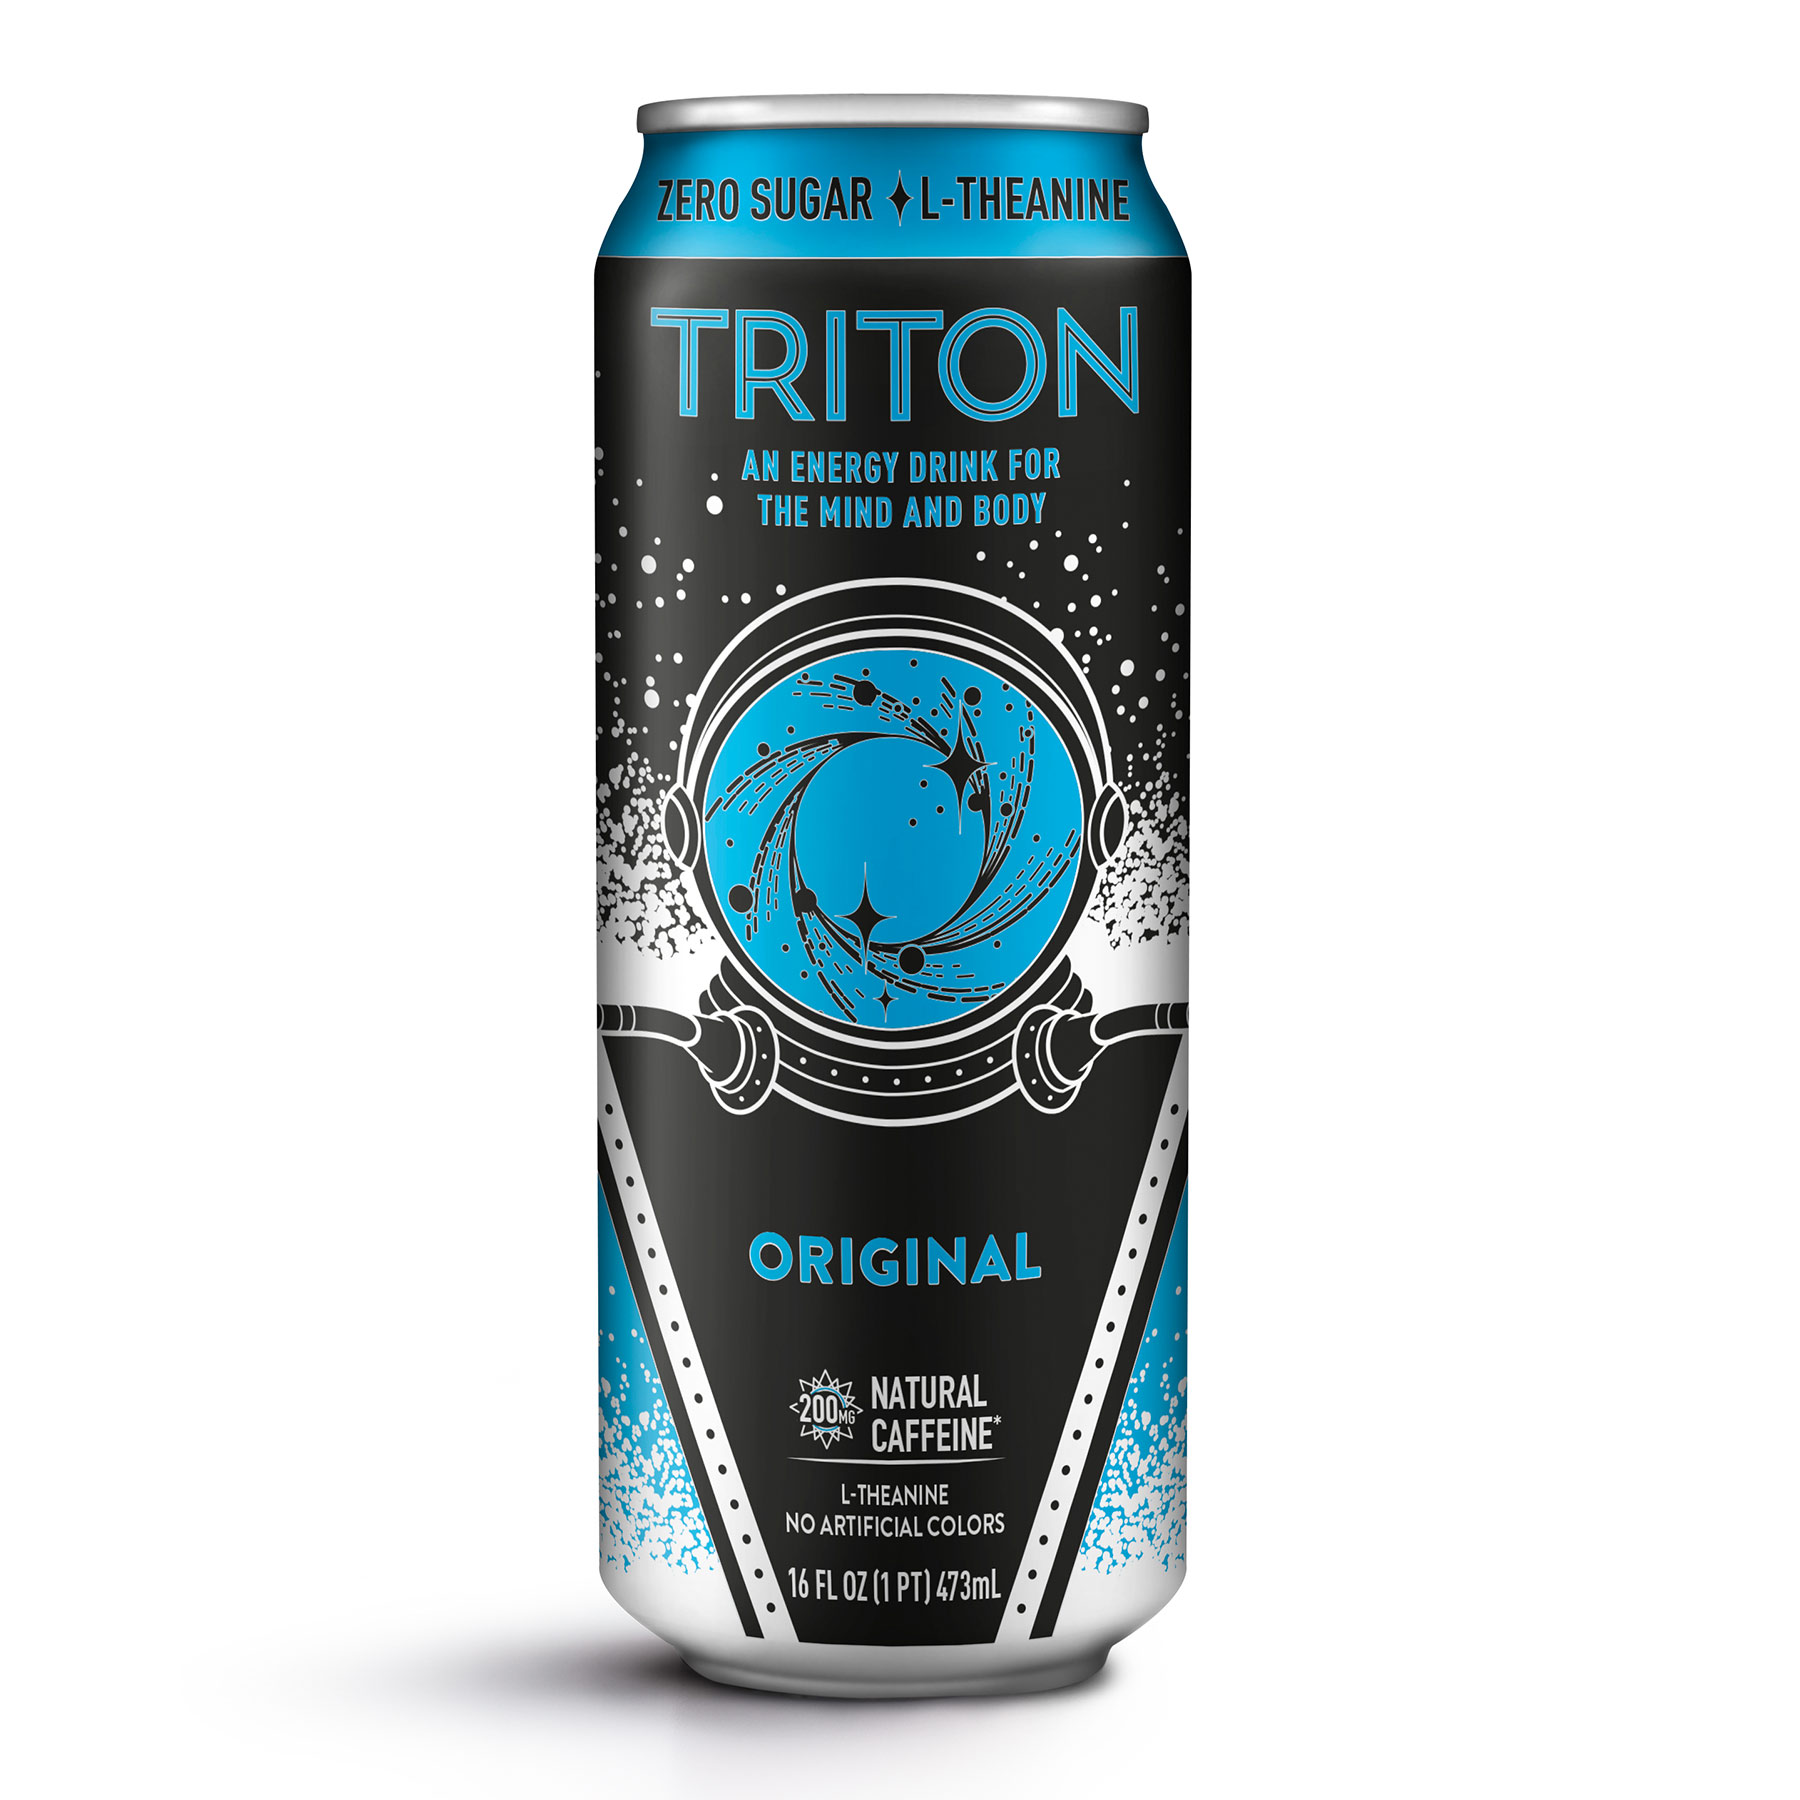 A single 16fl. oz can of Triton energy drink in original flavor, with 200mg of natural caffeine, zero sugar added and L-Theanine.